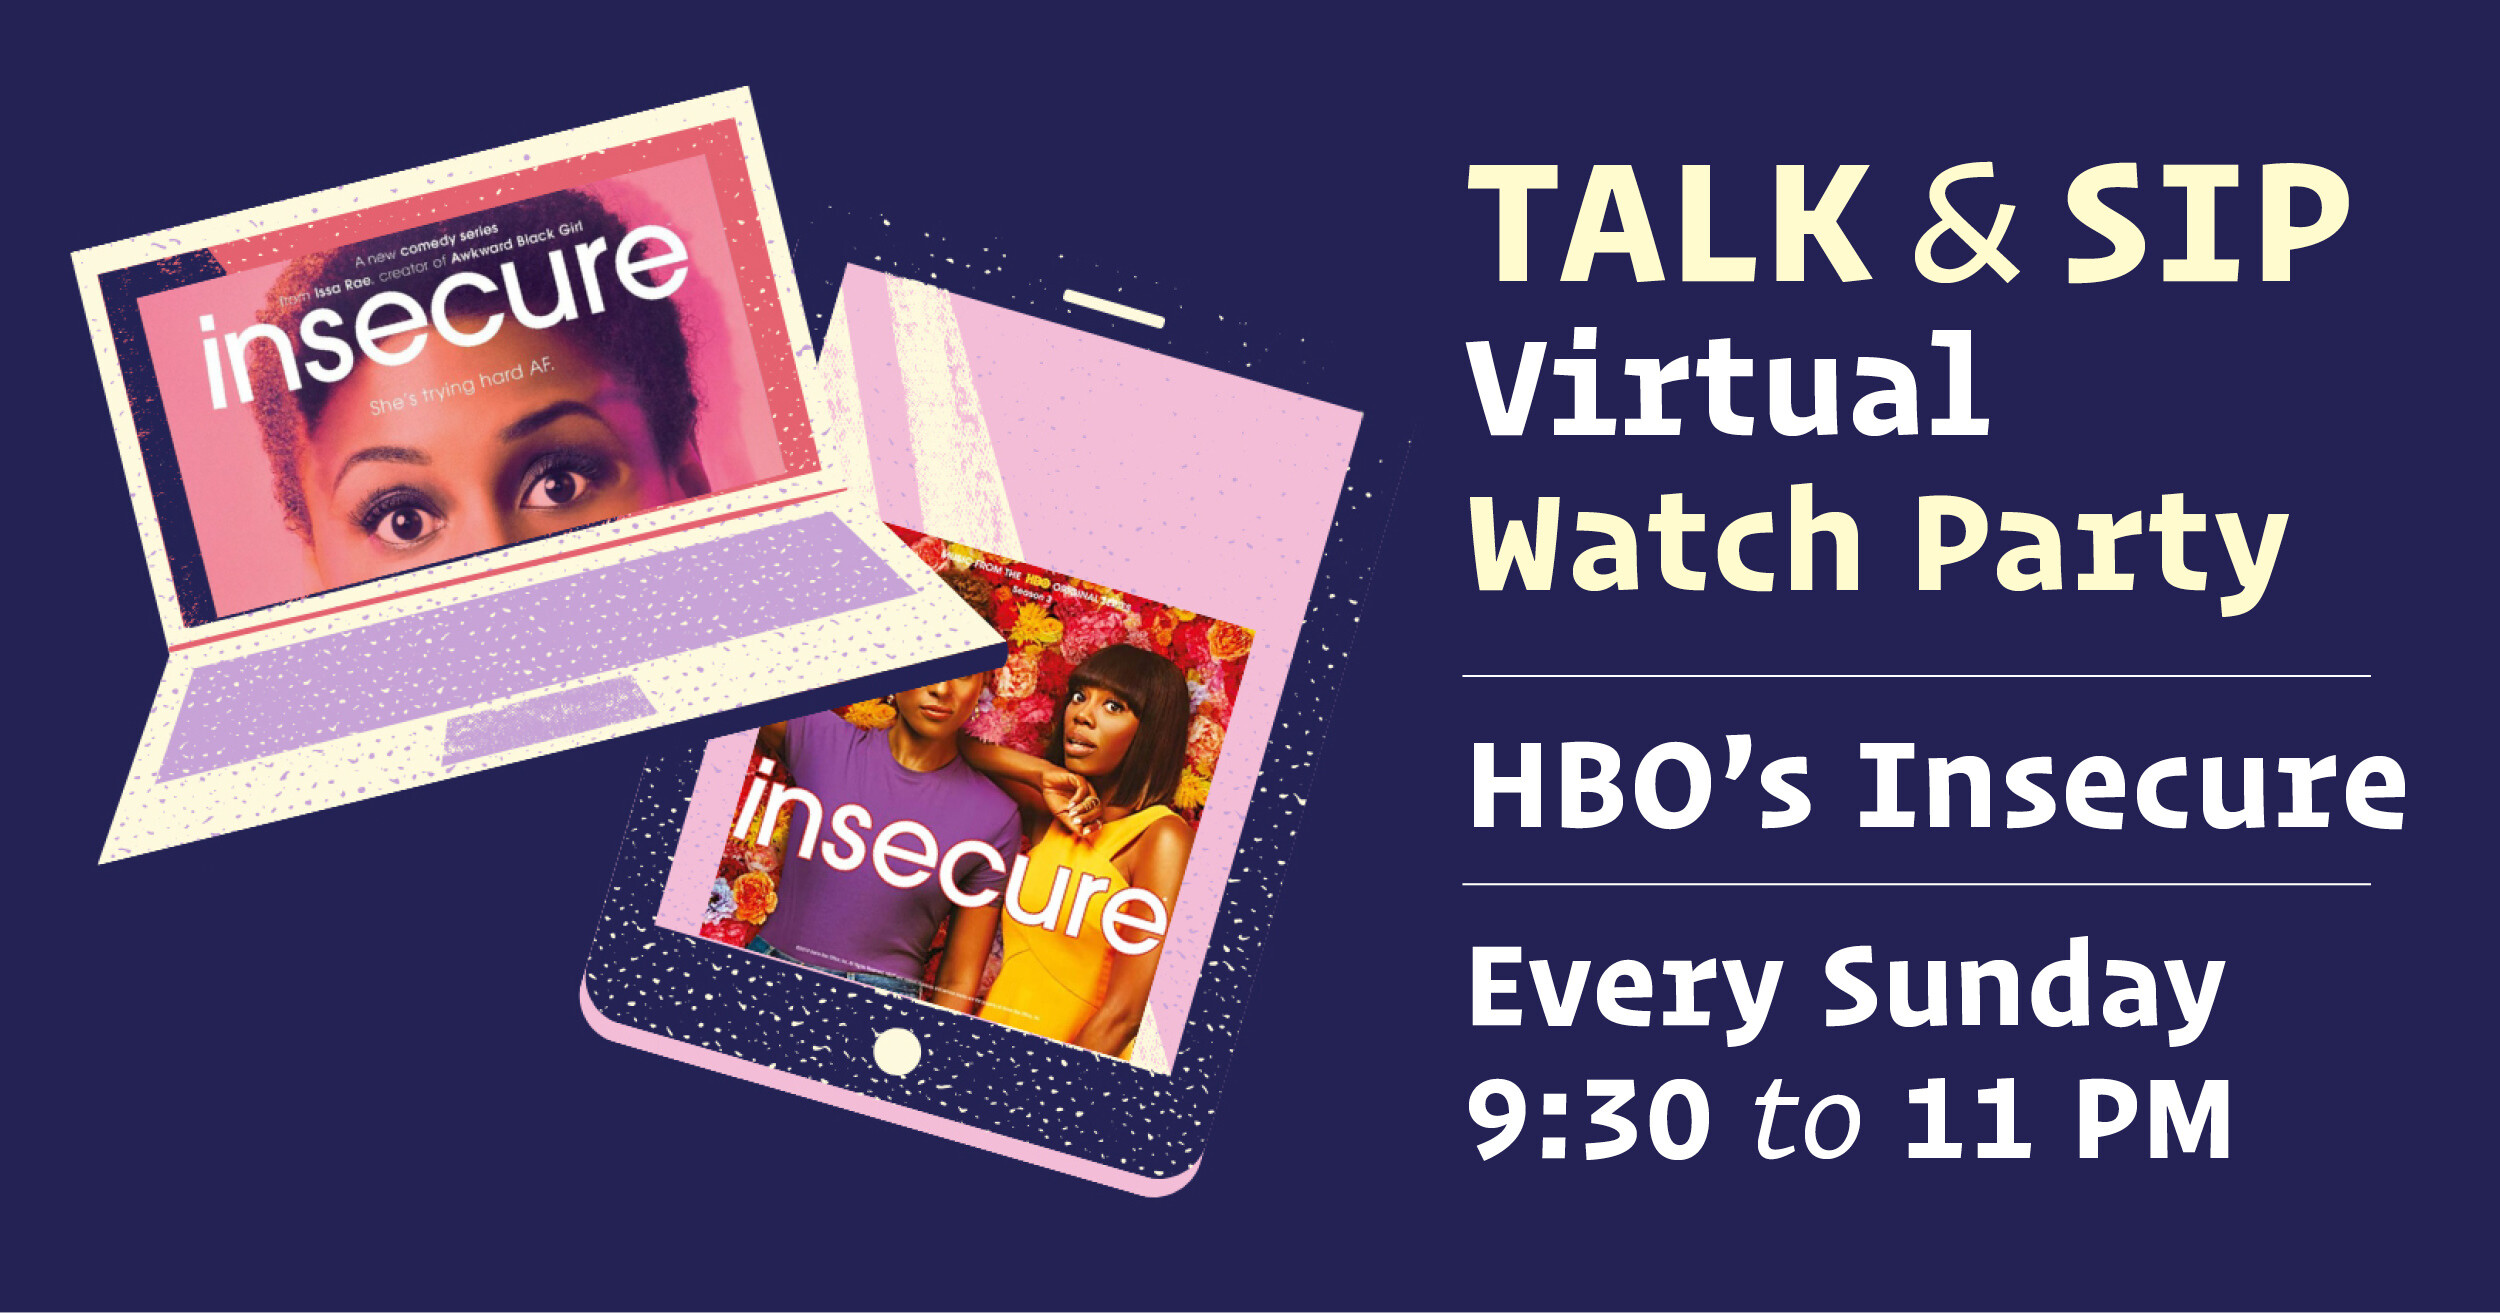 Talk & Sip: Virtual Watch Party